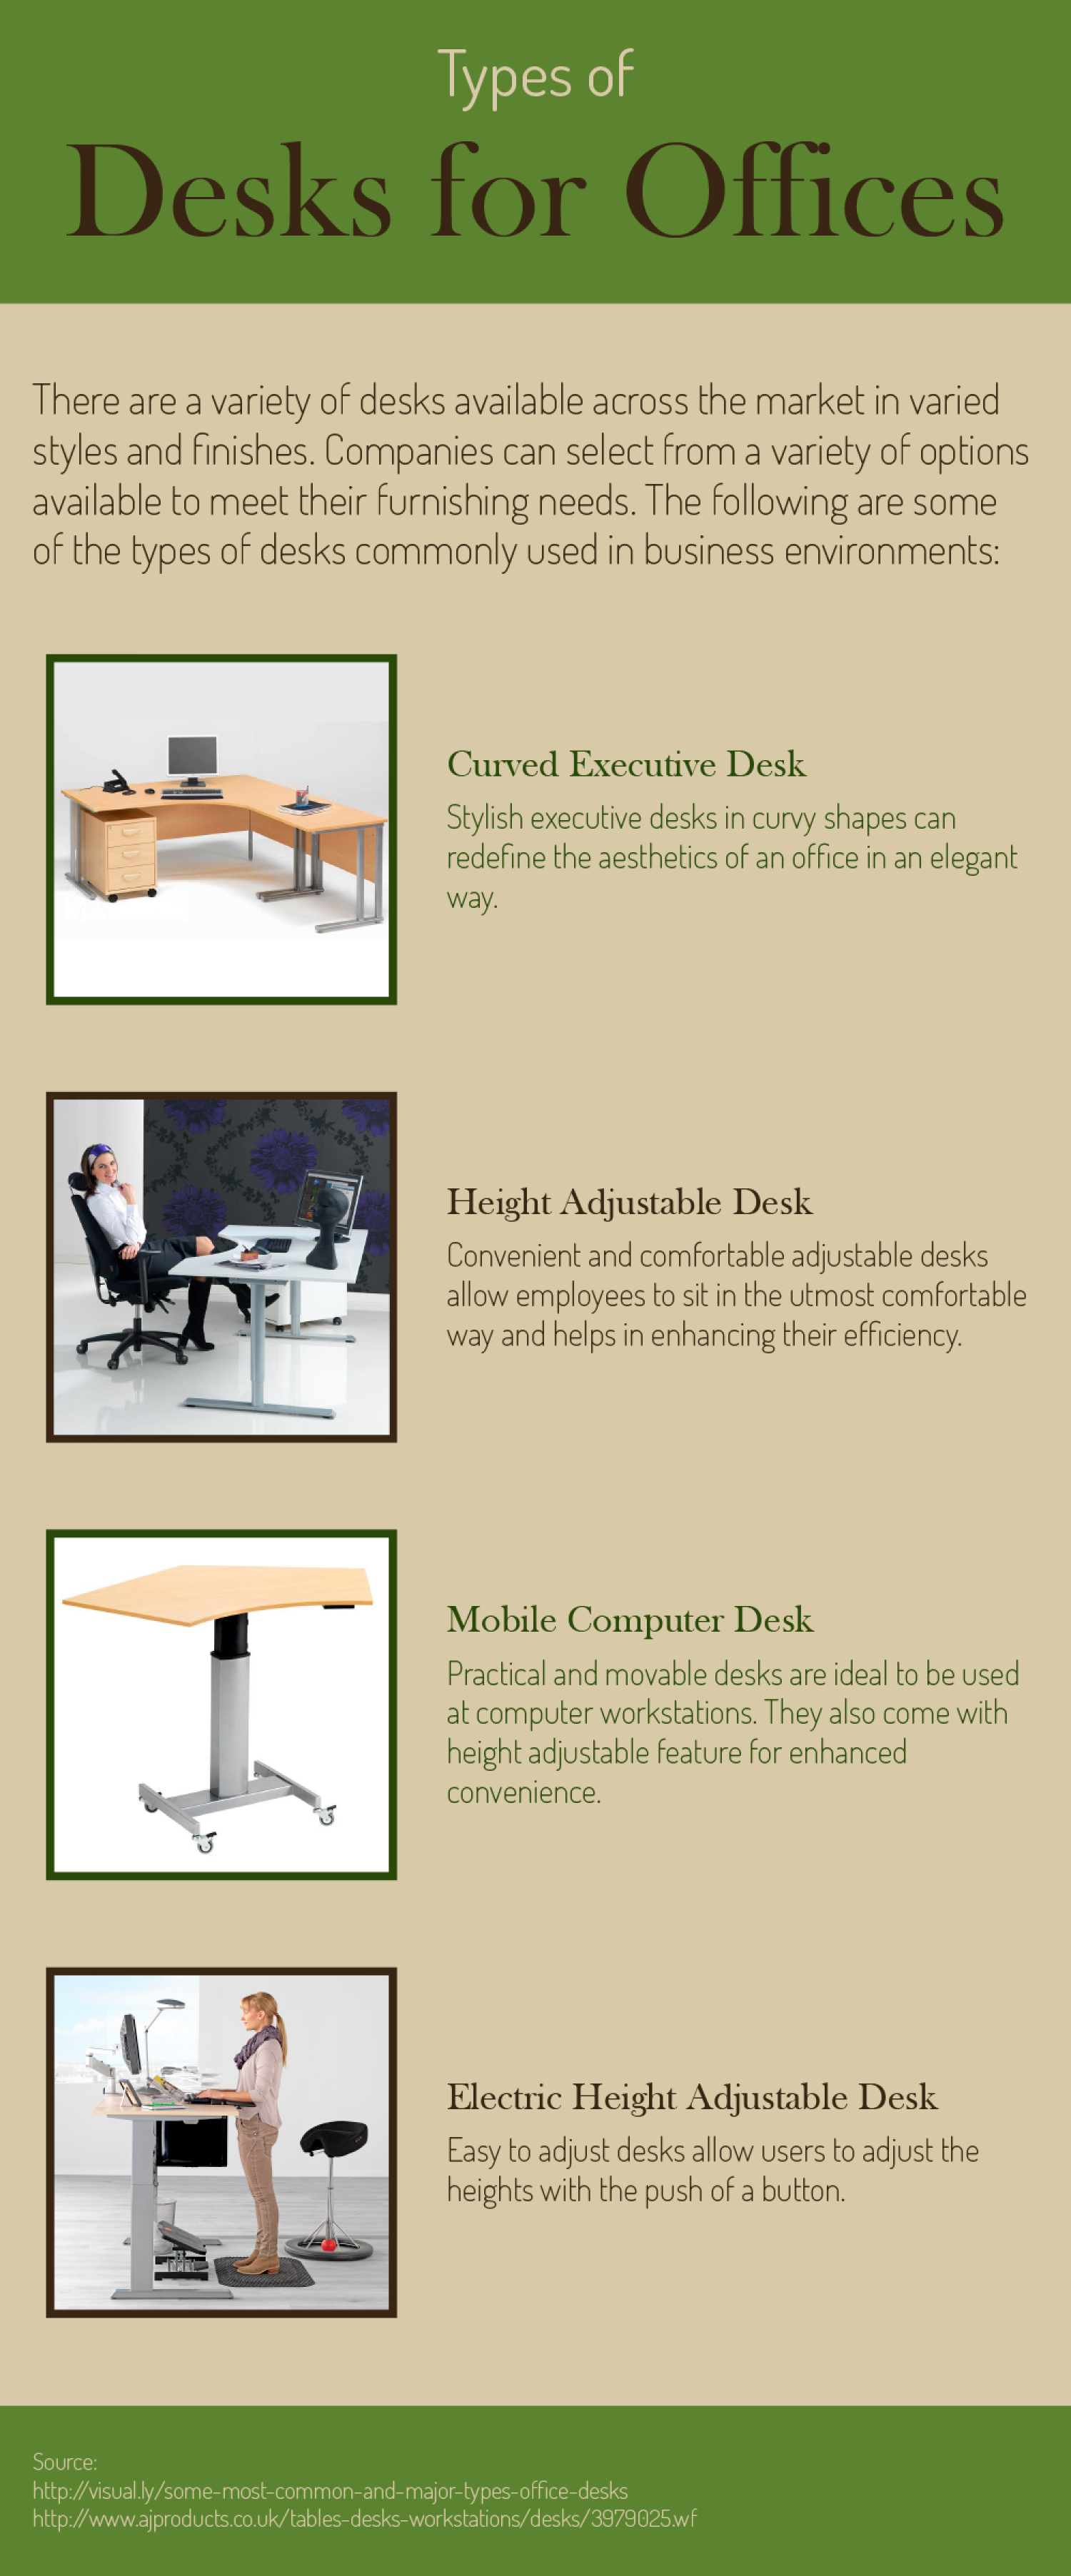 Types Of Desks Simple Types Of Desks For Offices  Visual.ly Inspiration Design